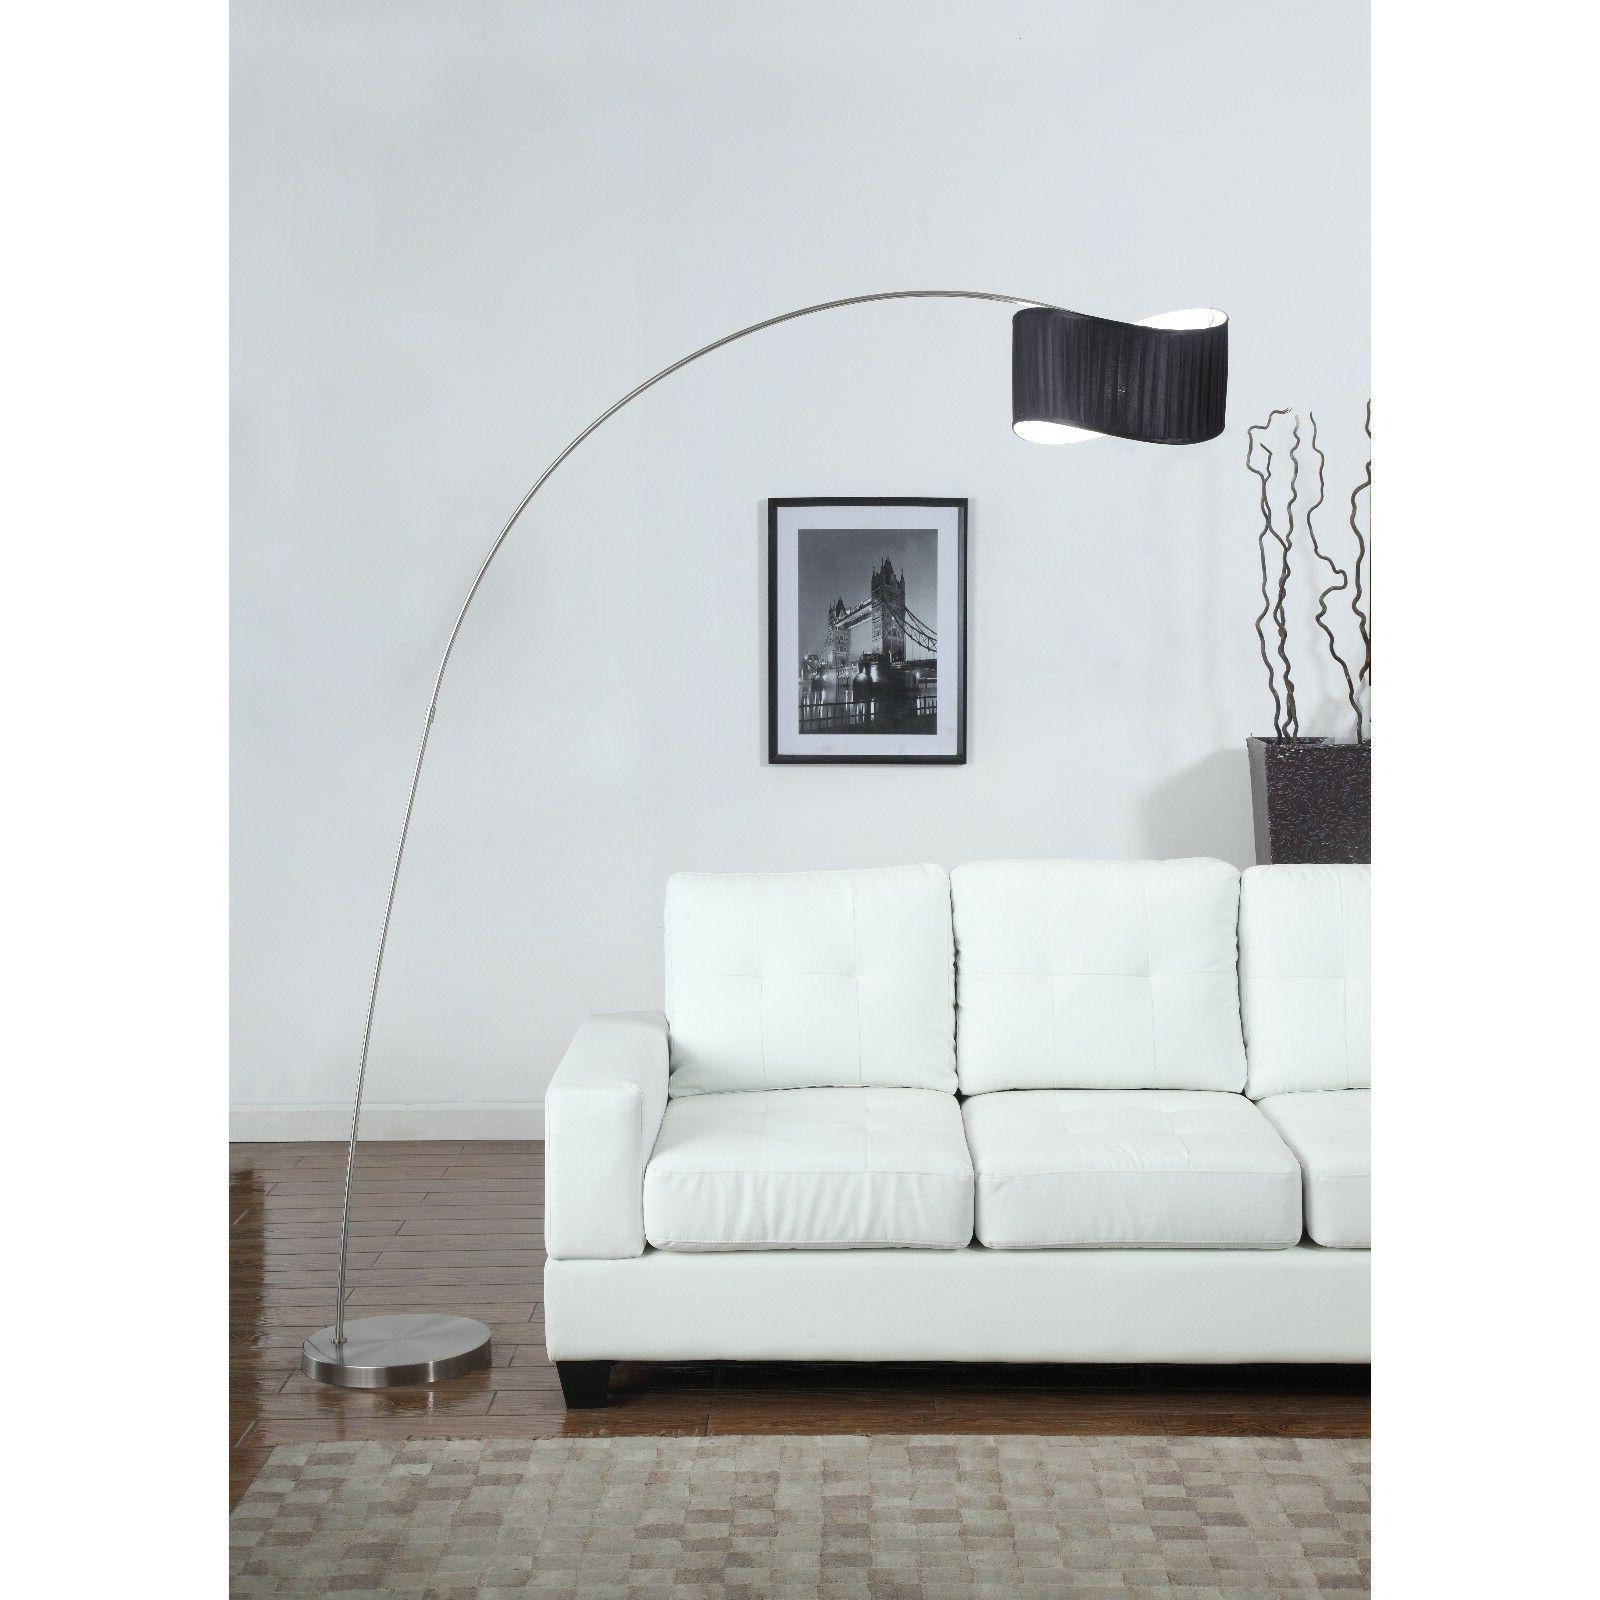 Artiva USA 'The Curve' 81-inch Black Curved Shade Brushed St